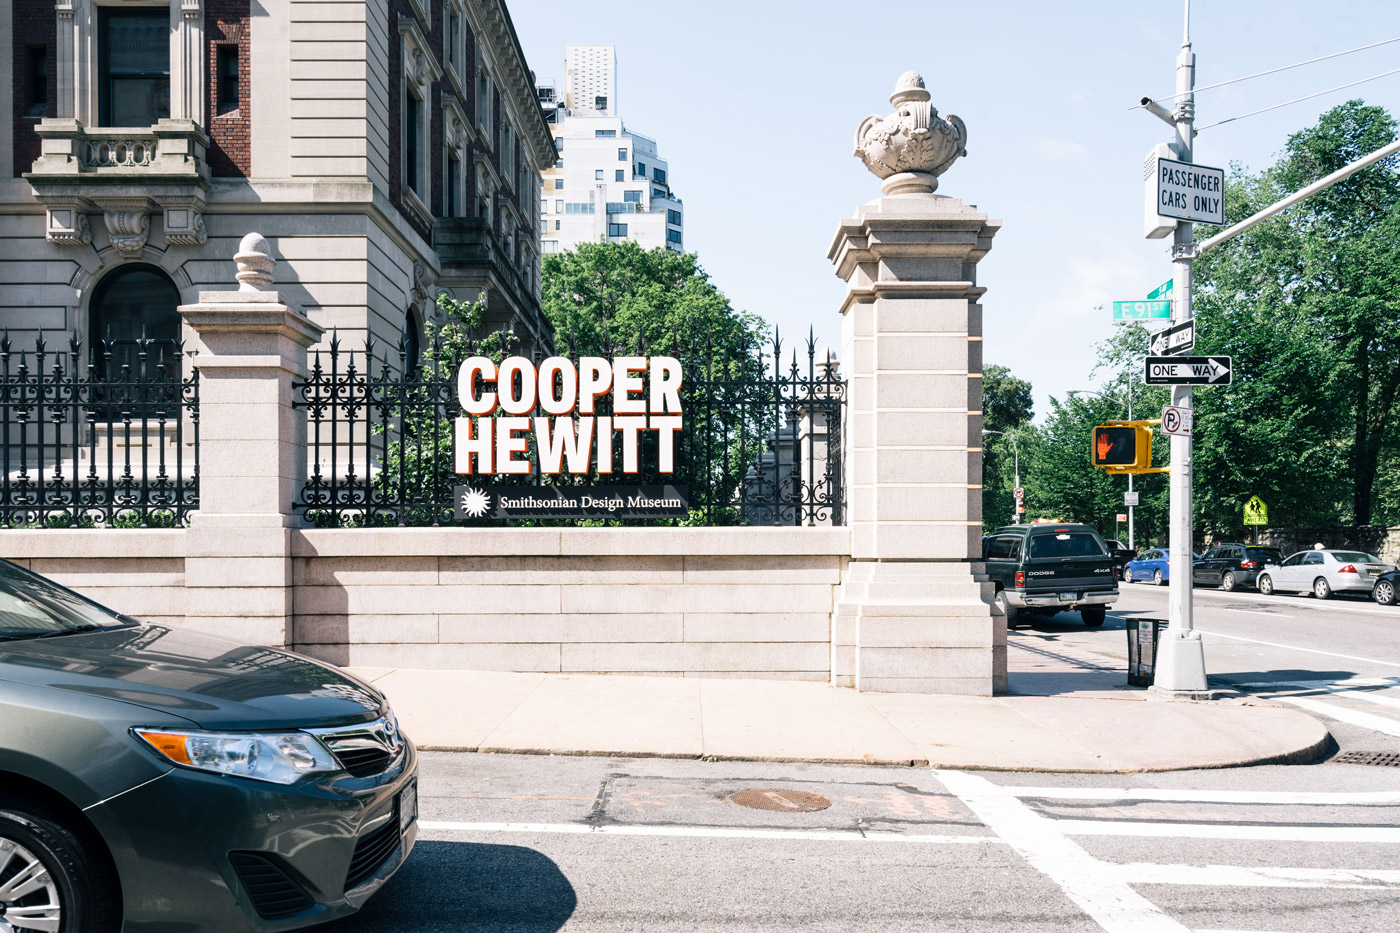 Cooper Hewitt Smithsonian Design Museum in Carnegie Hill at East 91st and 2nd.